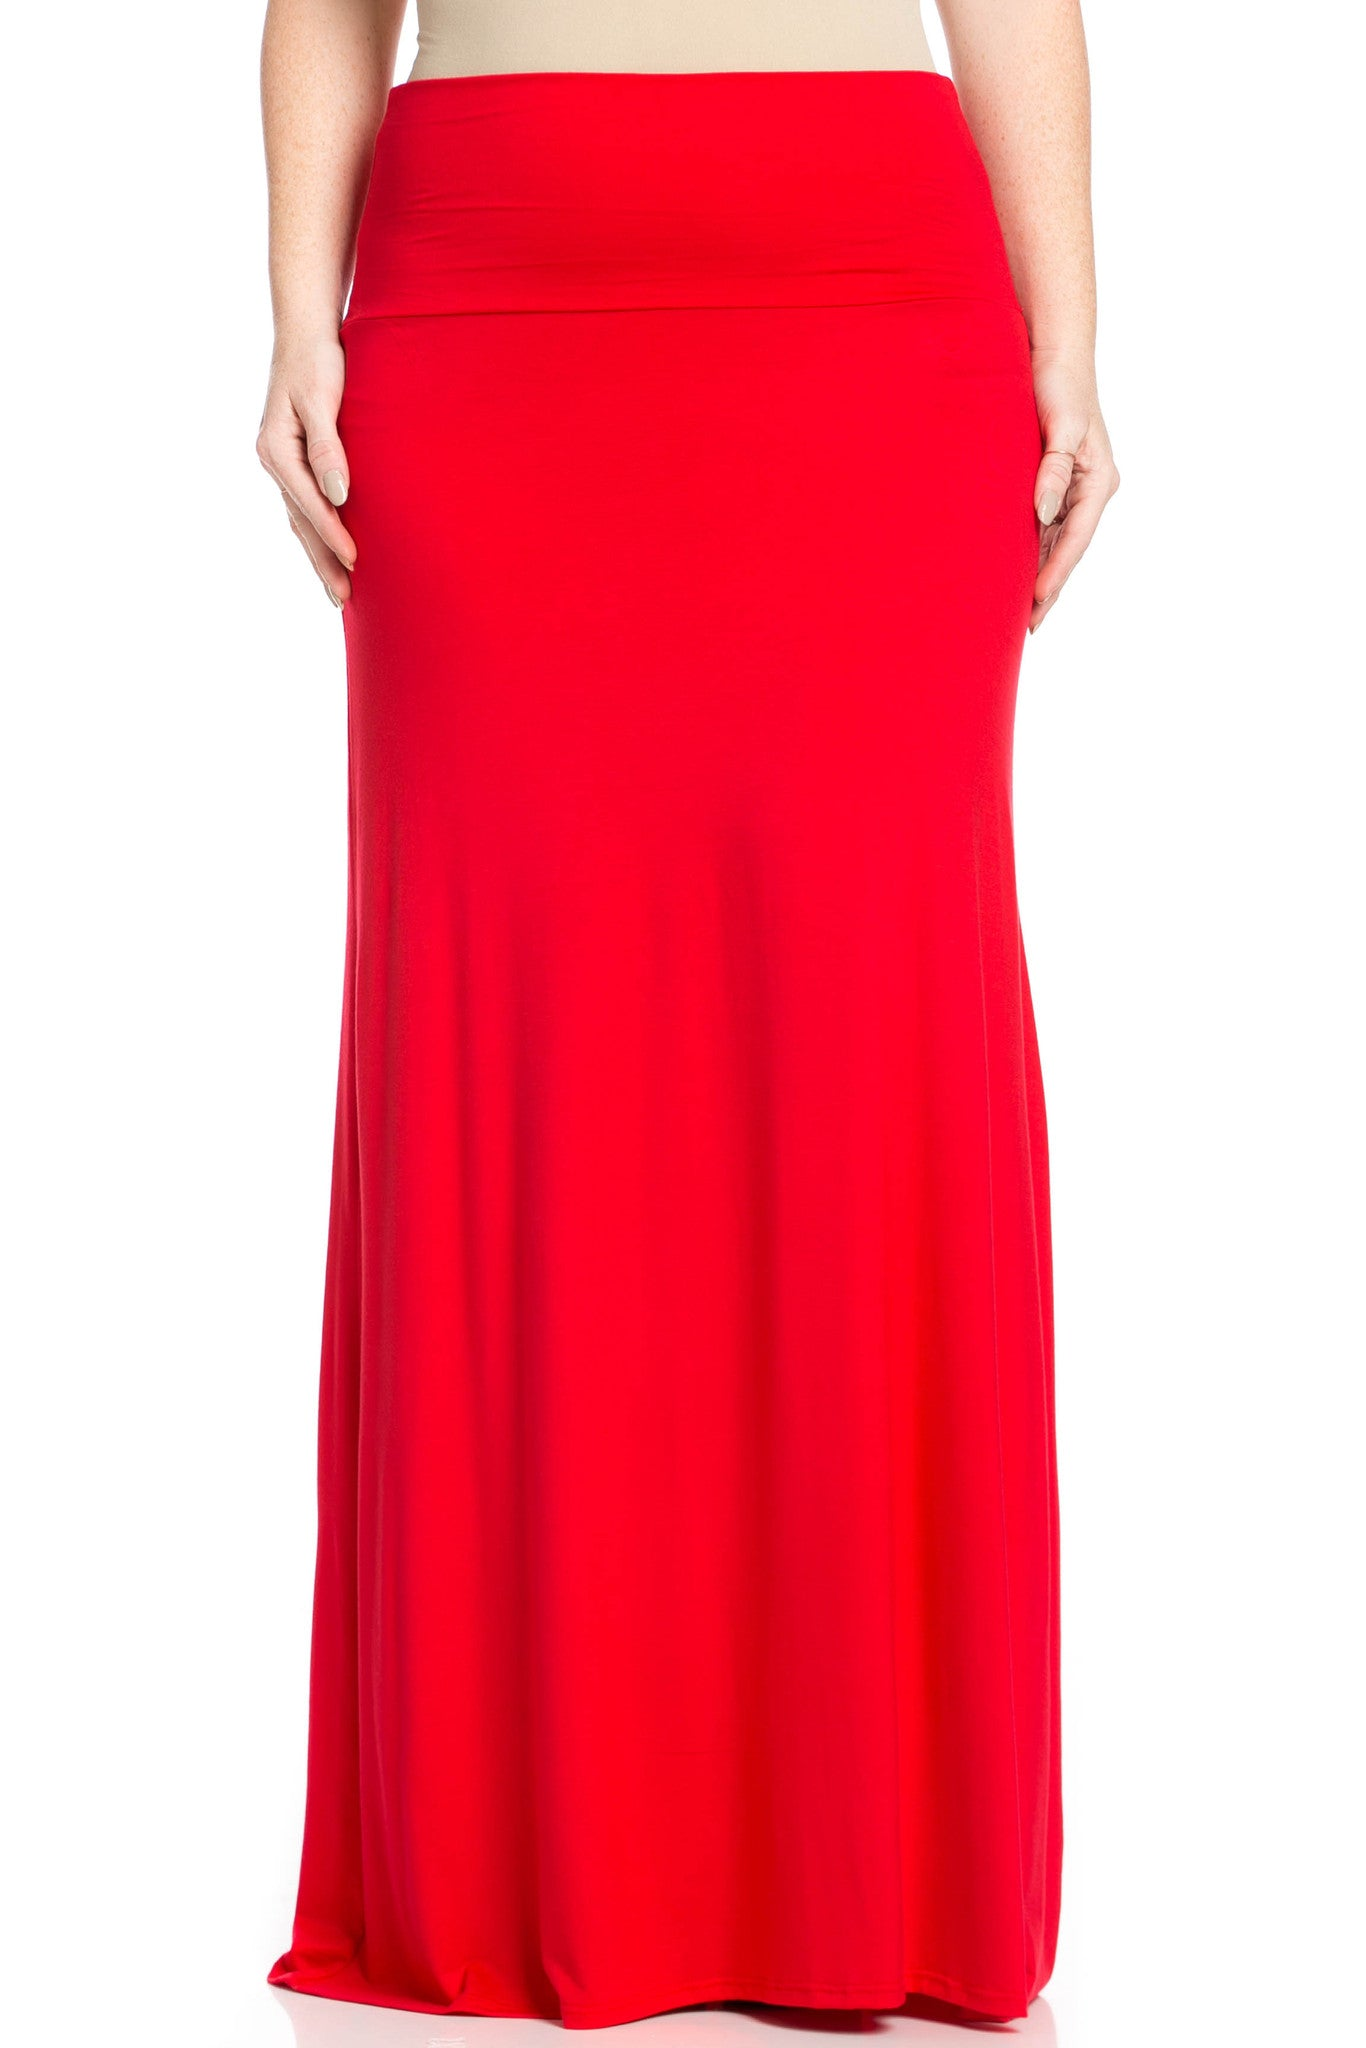 Fold Over Two-Way Maxi Skirt Red - Skirts - My Yuccie - 8